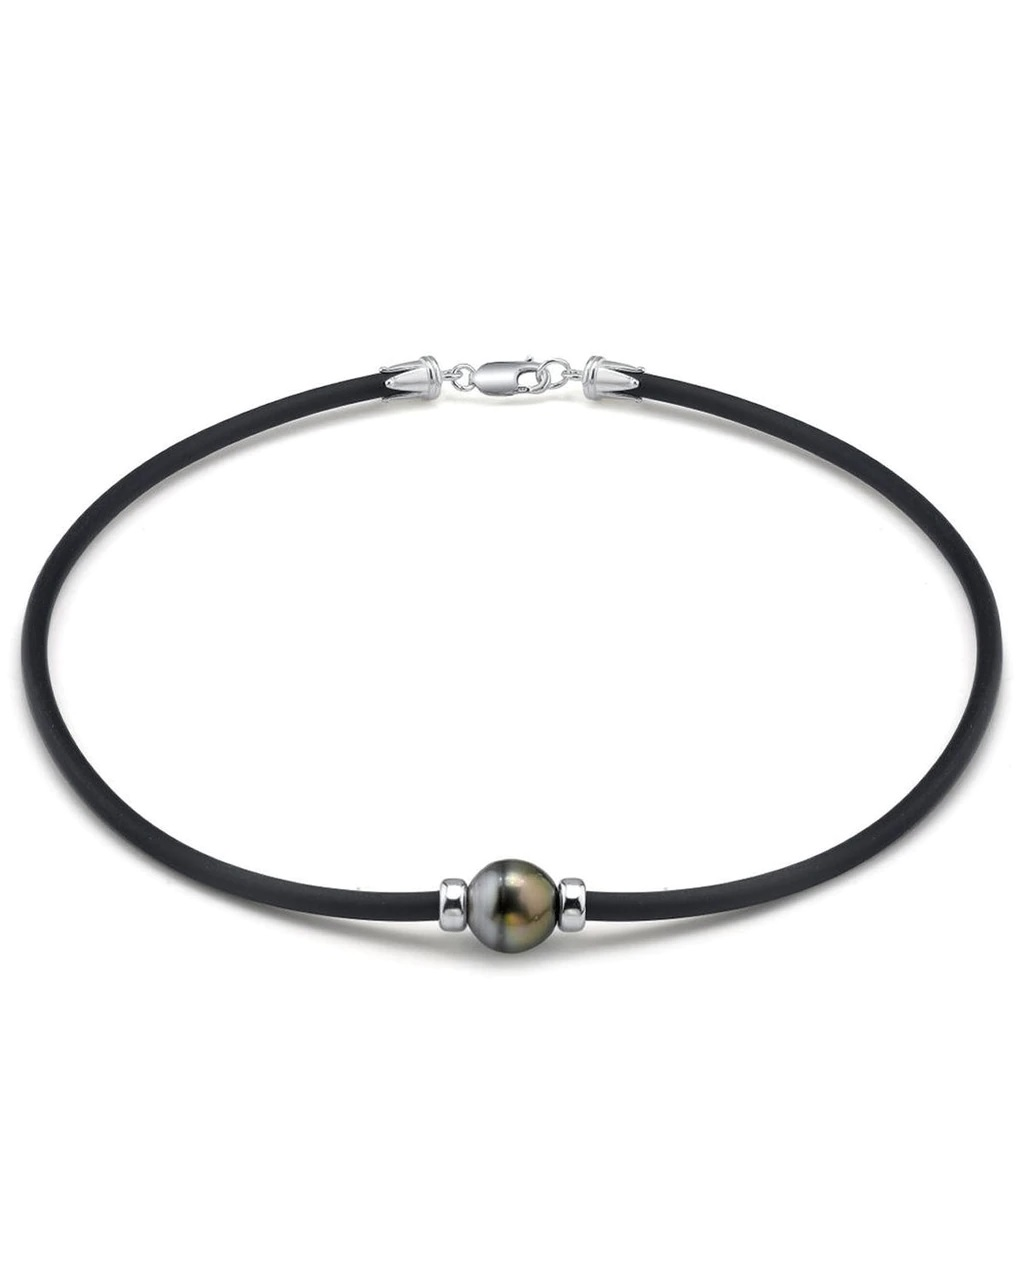 This beautiful necklace features a circle baroque shaped Tahitian South Sea pearl